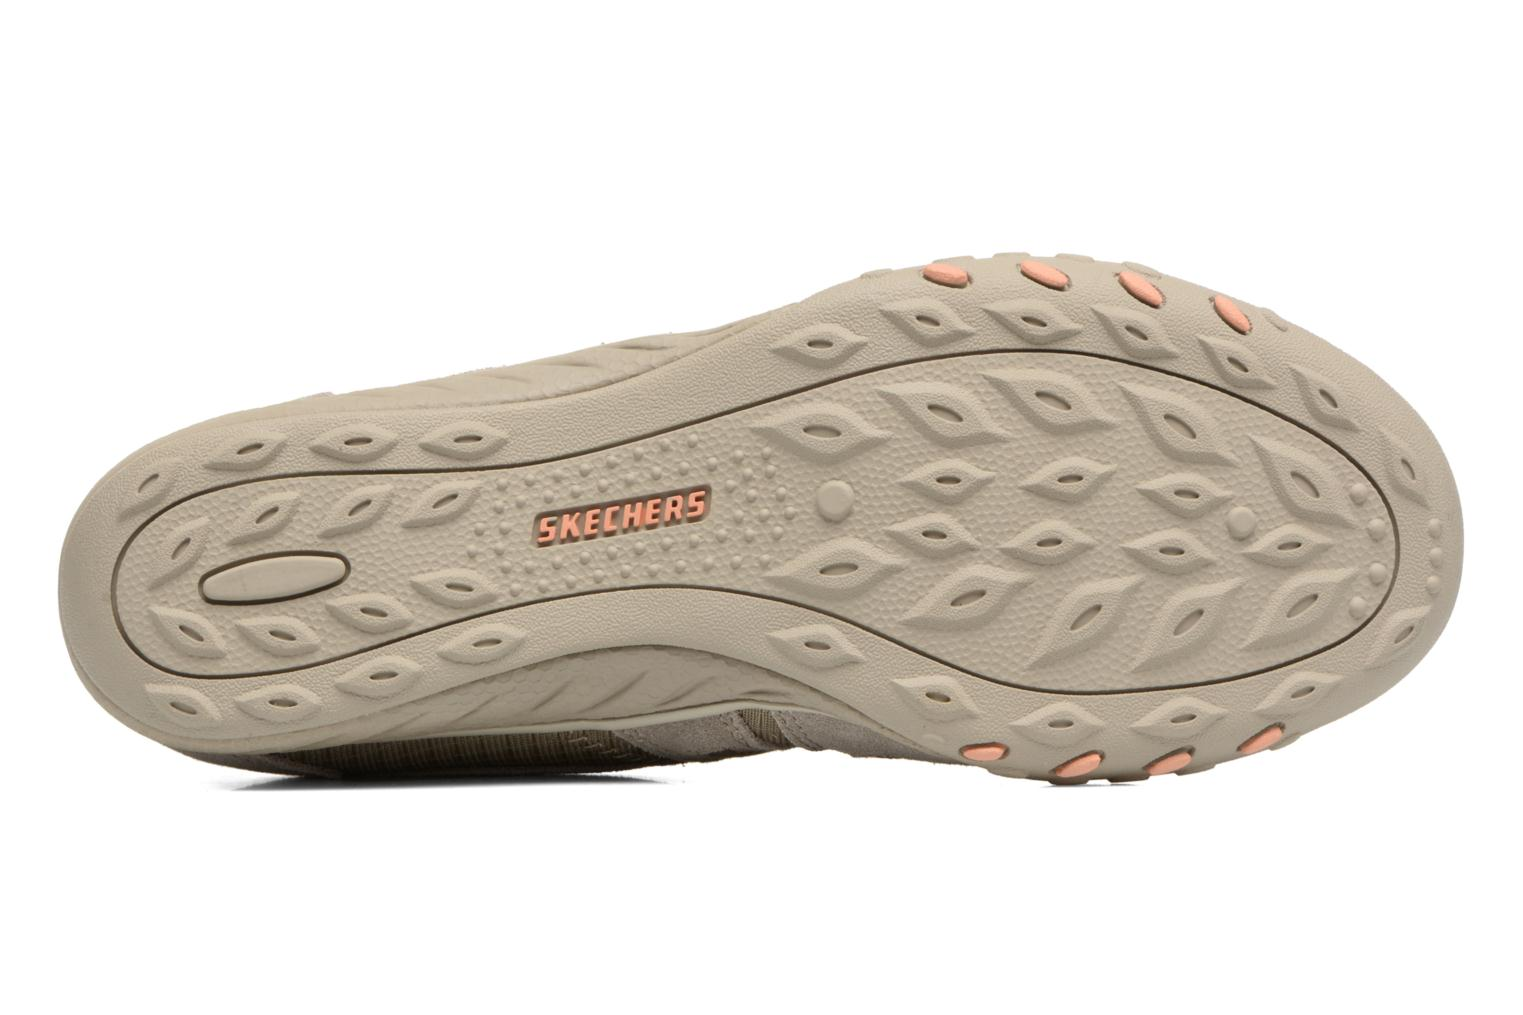 Baskets Skechers Breathe-Easy - Jackpot 22532 Beige vue haut